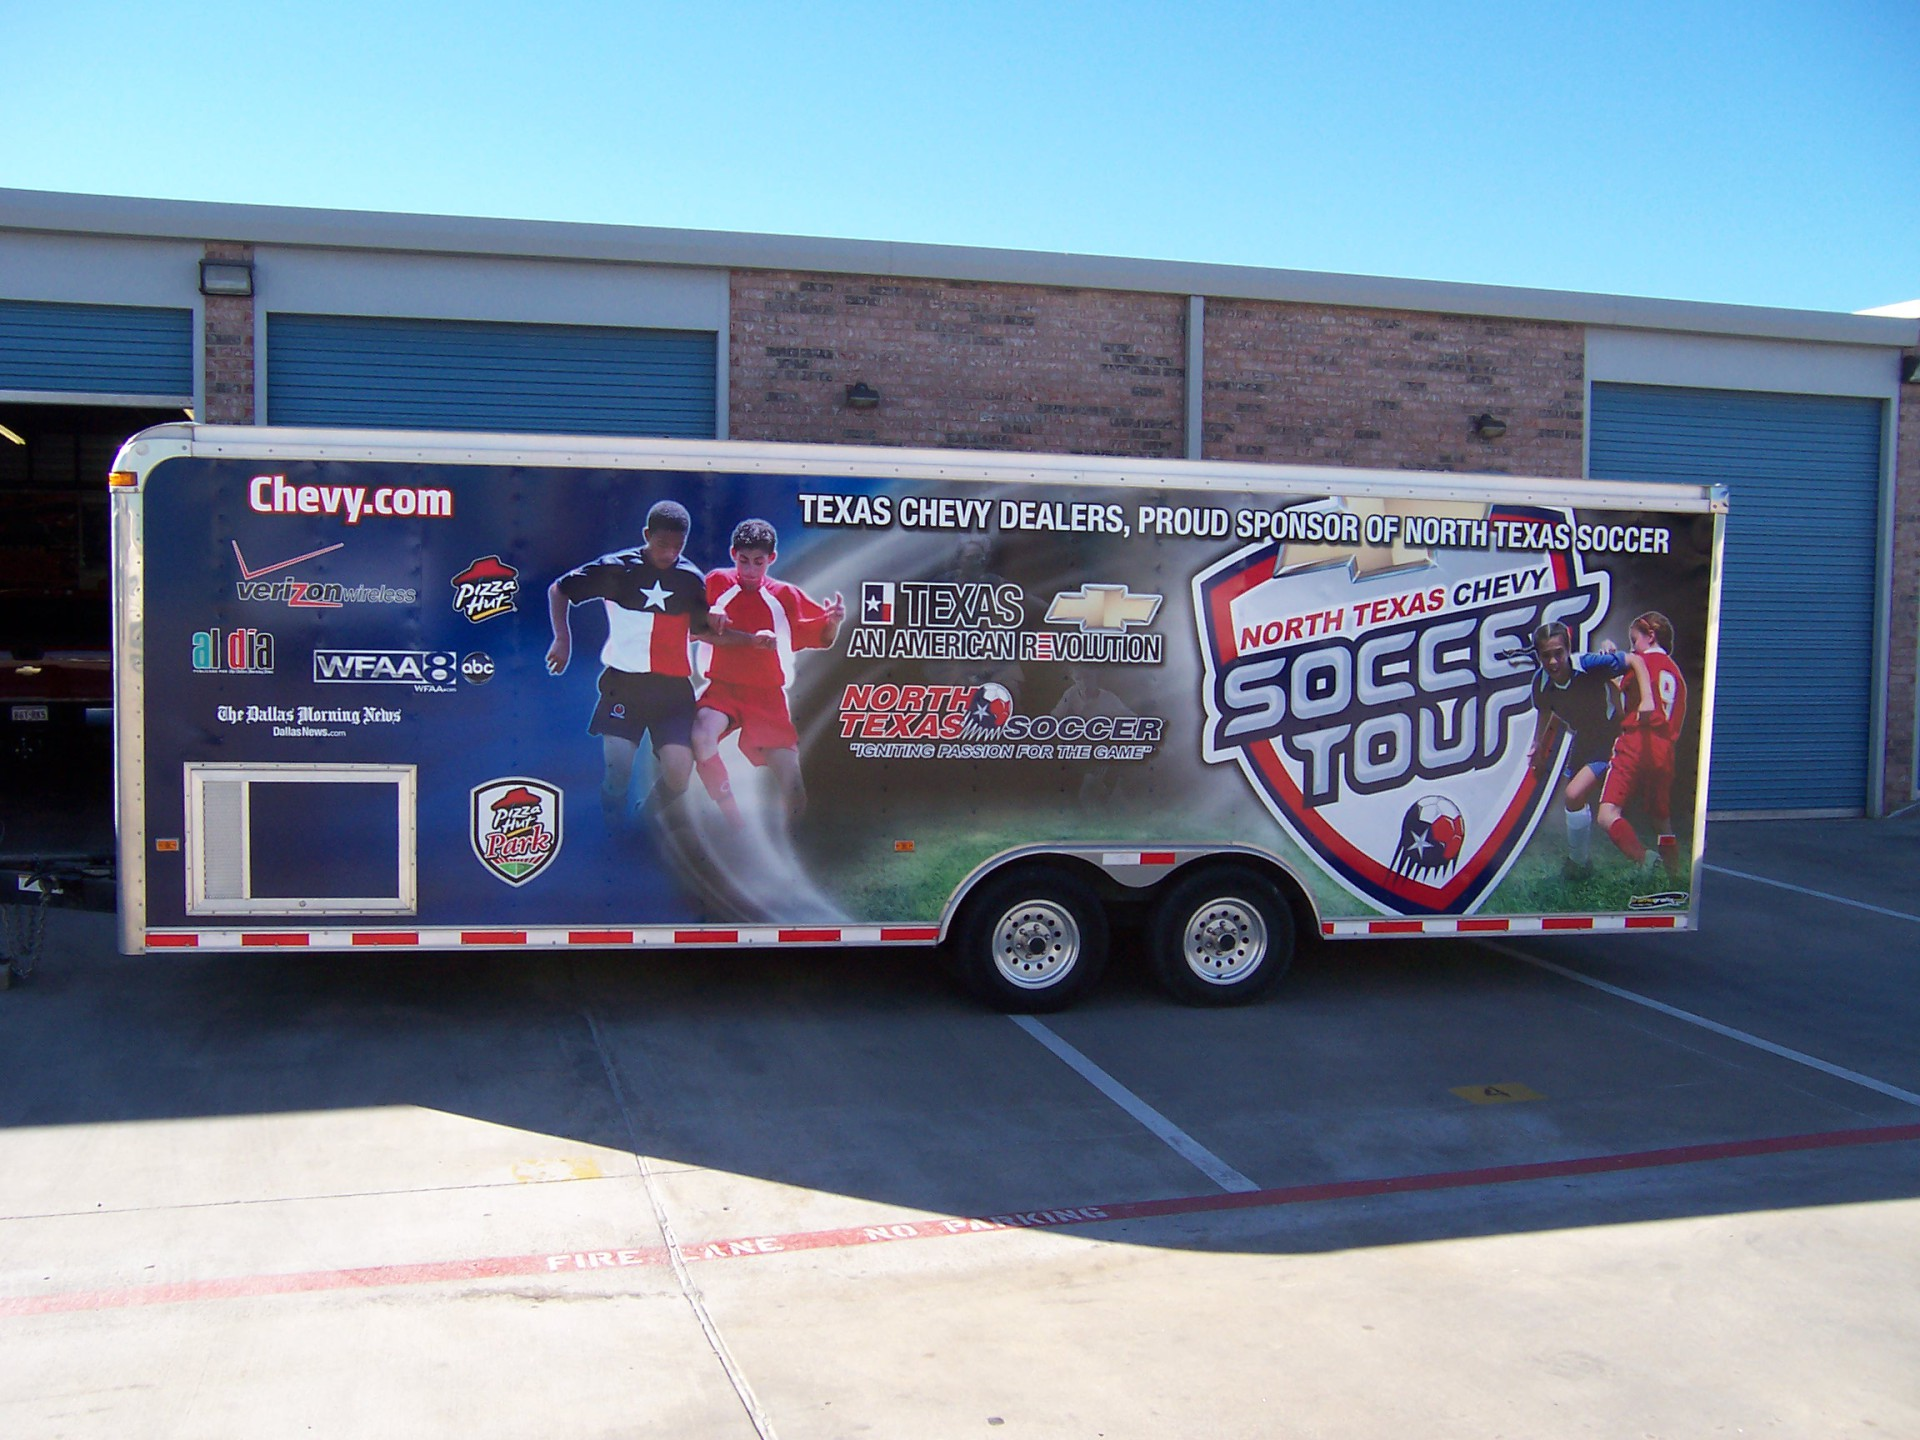 Trailer Wrap Frisco Texas, Trailer wrap dallas, Best trailer wrap in Dallas